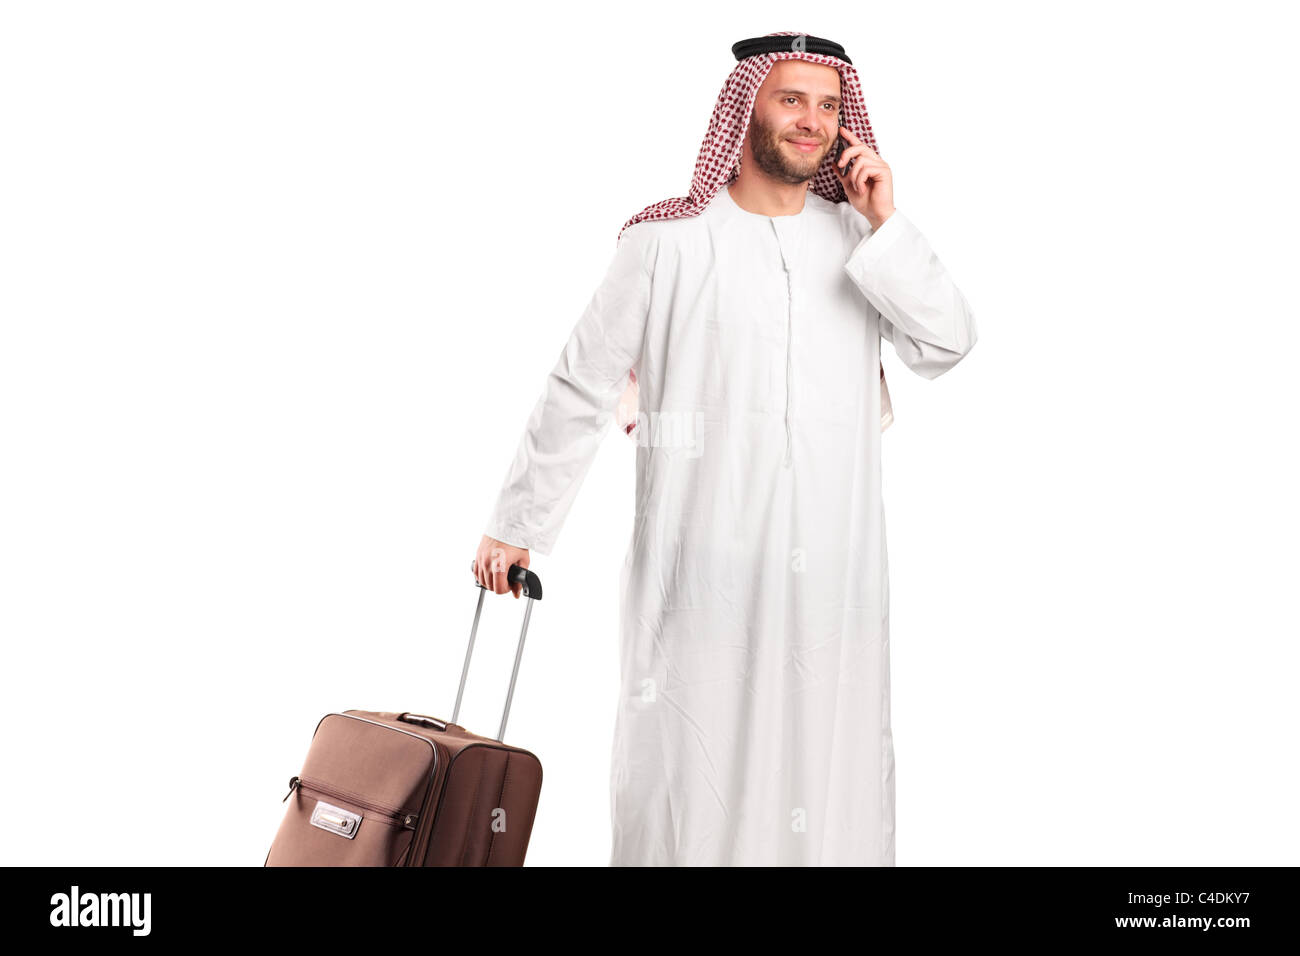 Arab tourist carrying a suitcase and talking on a mobile phone Stock Photo